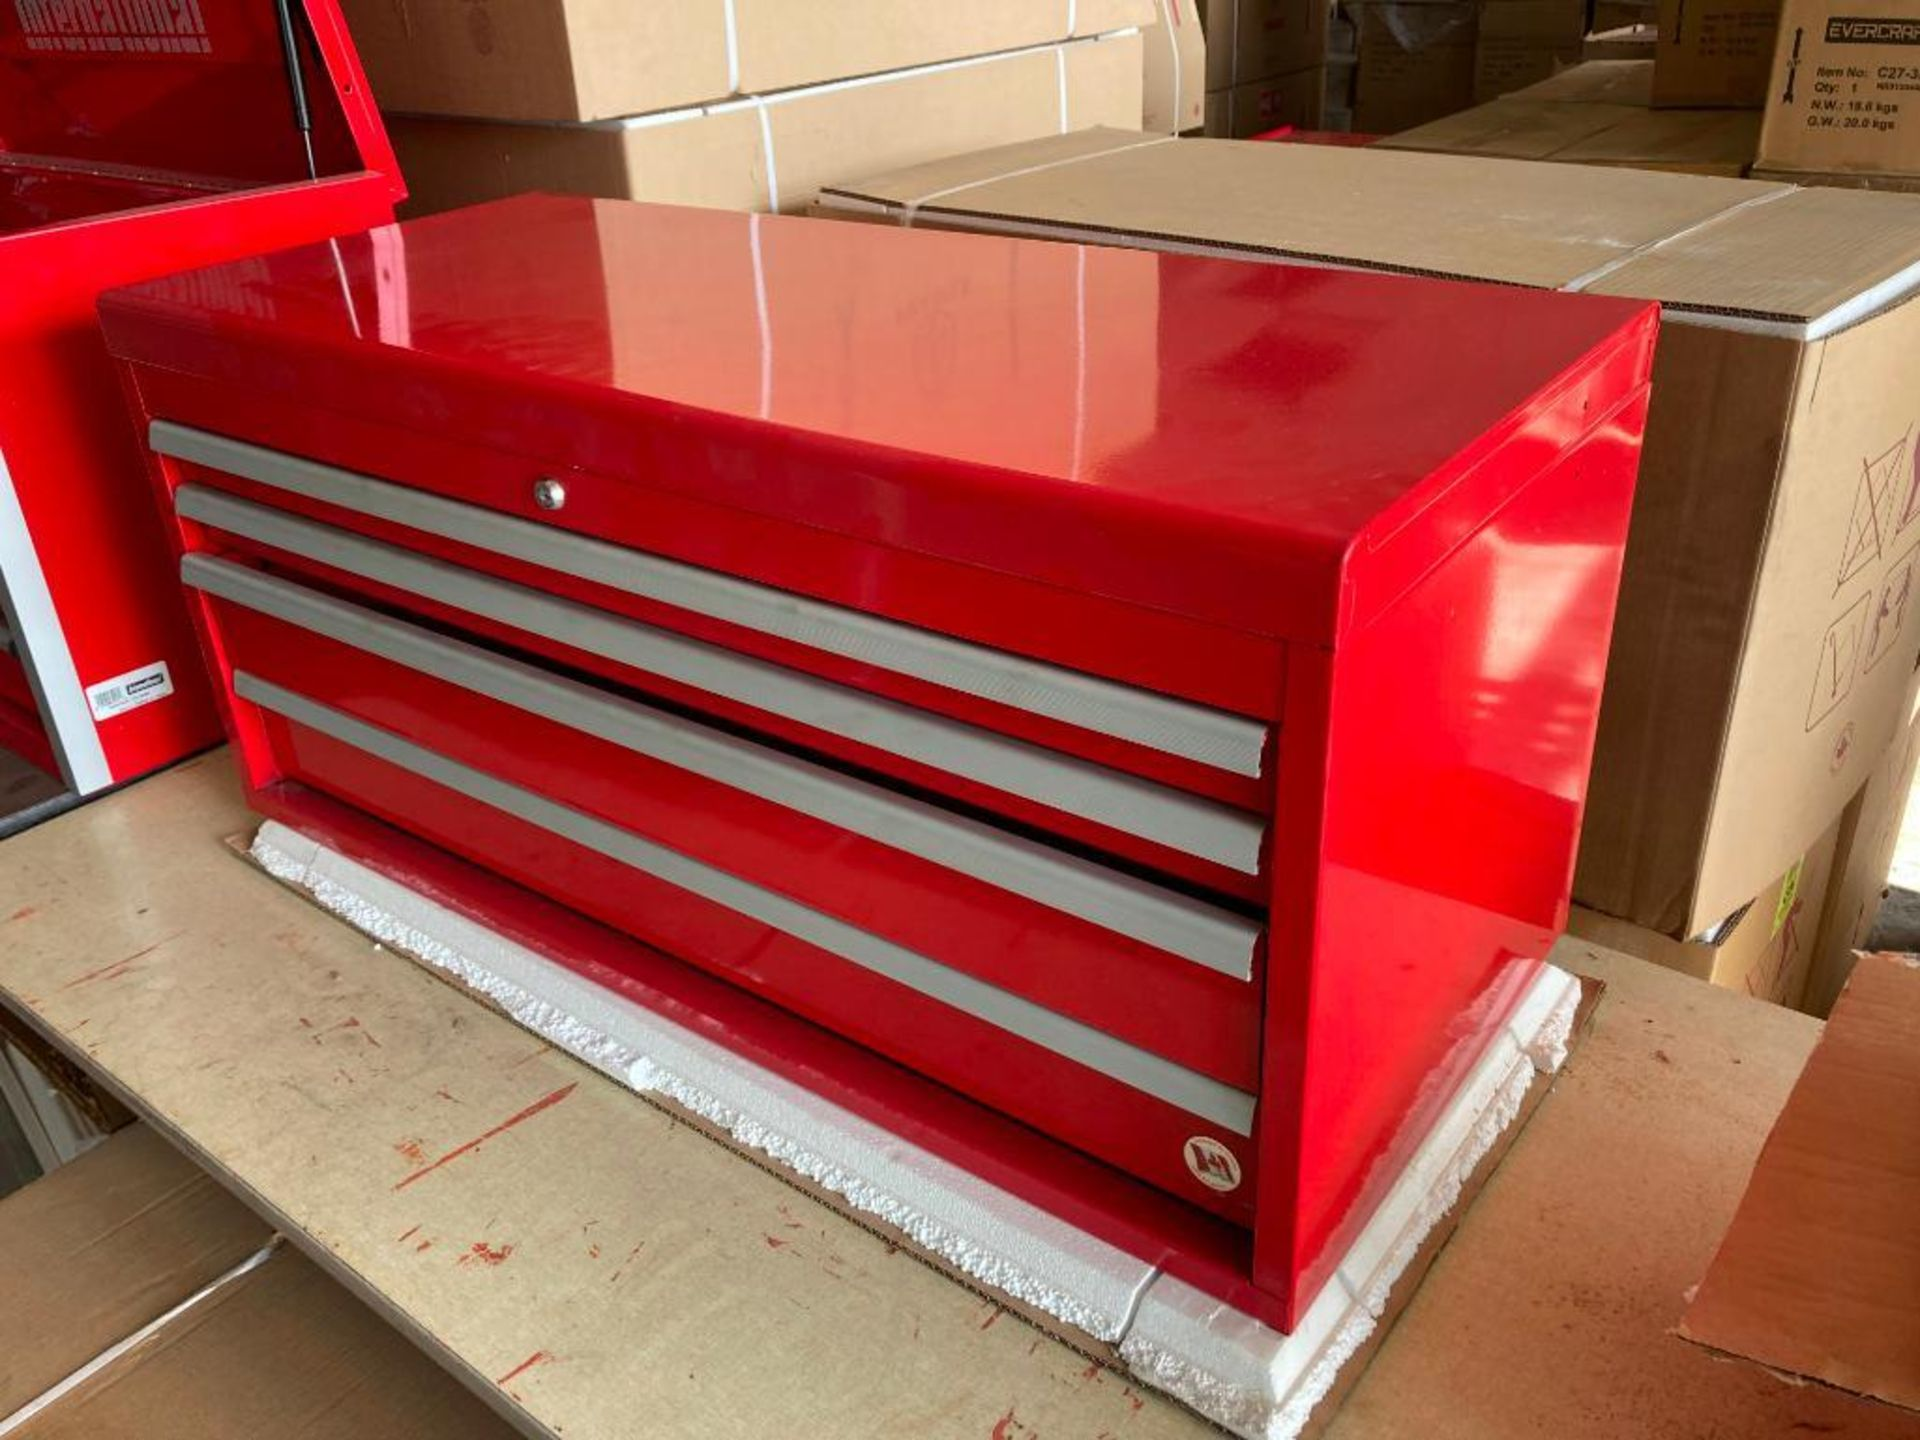 (NEW) INTERNATIONAL 4-DRAWER TOP TOOL CHEST; 40'' X 18''; RED - Image 2 of 2